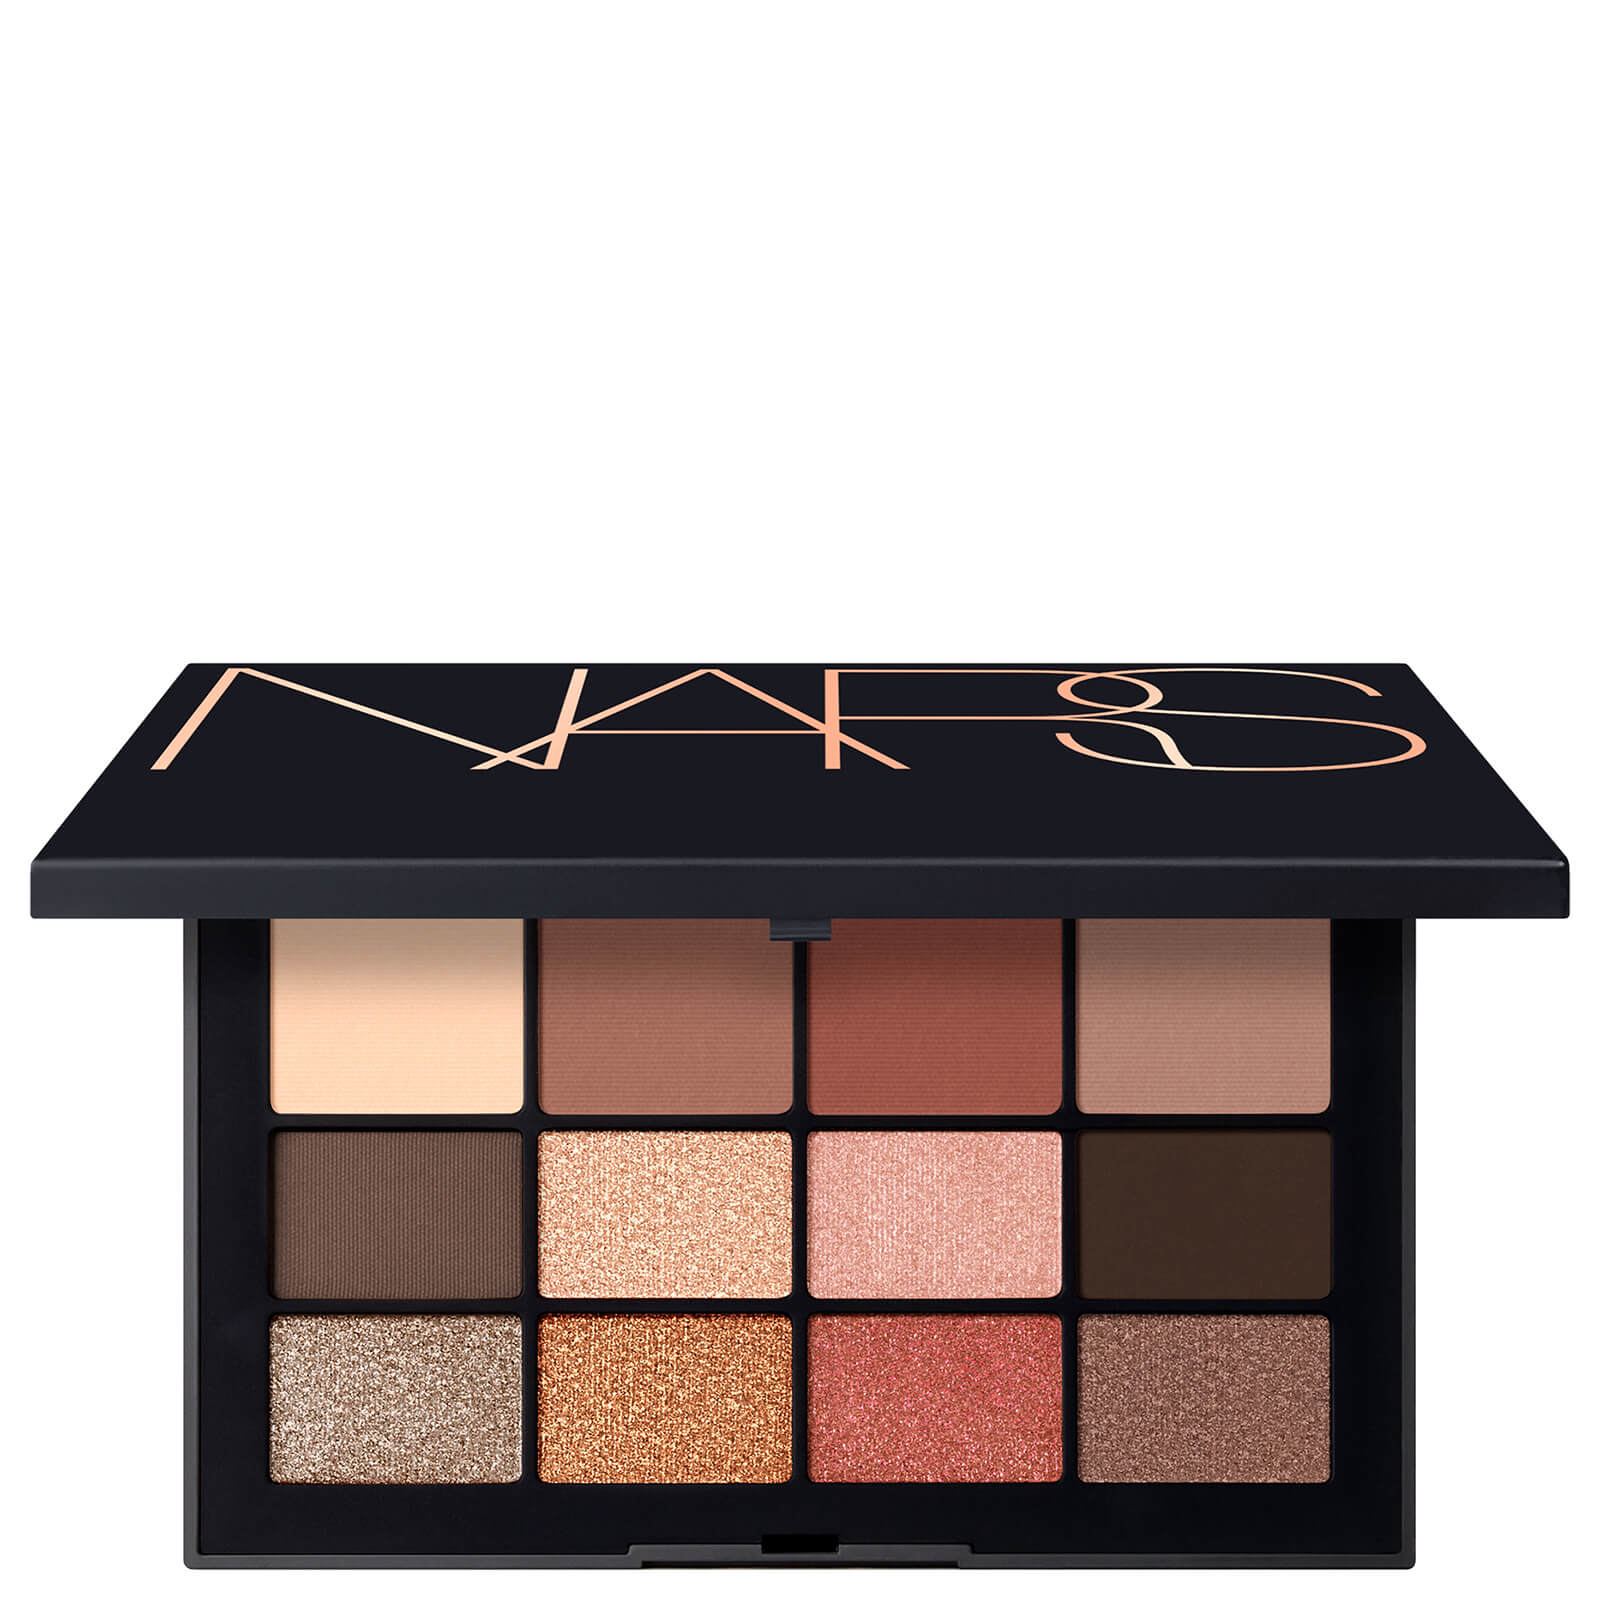 NARS Cosmetics The Skin Deep Eye Palette